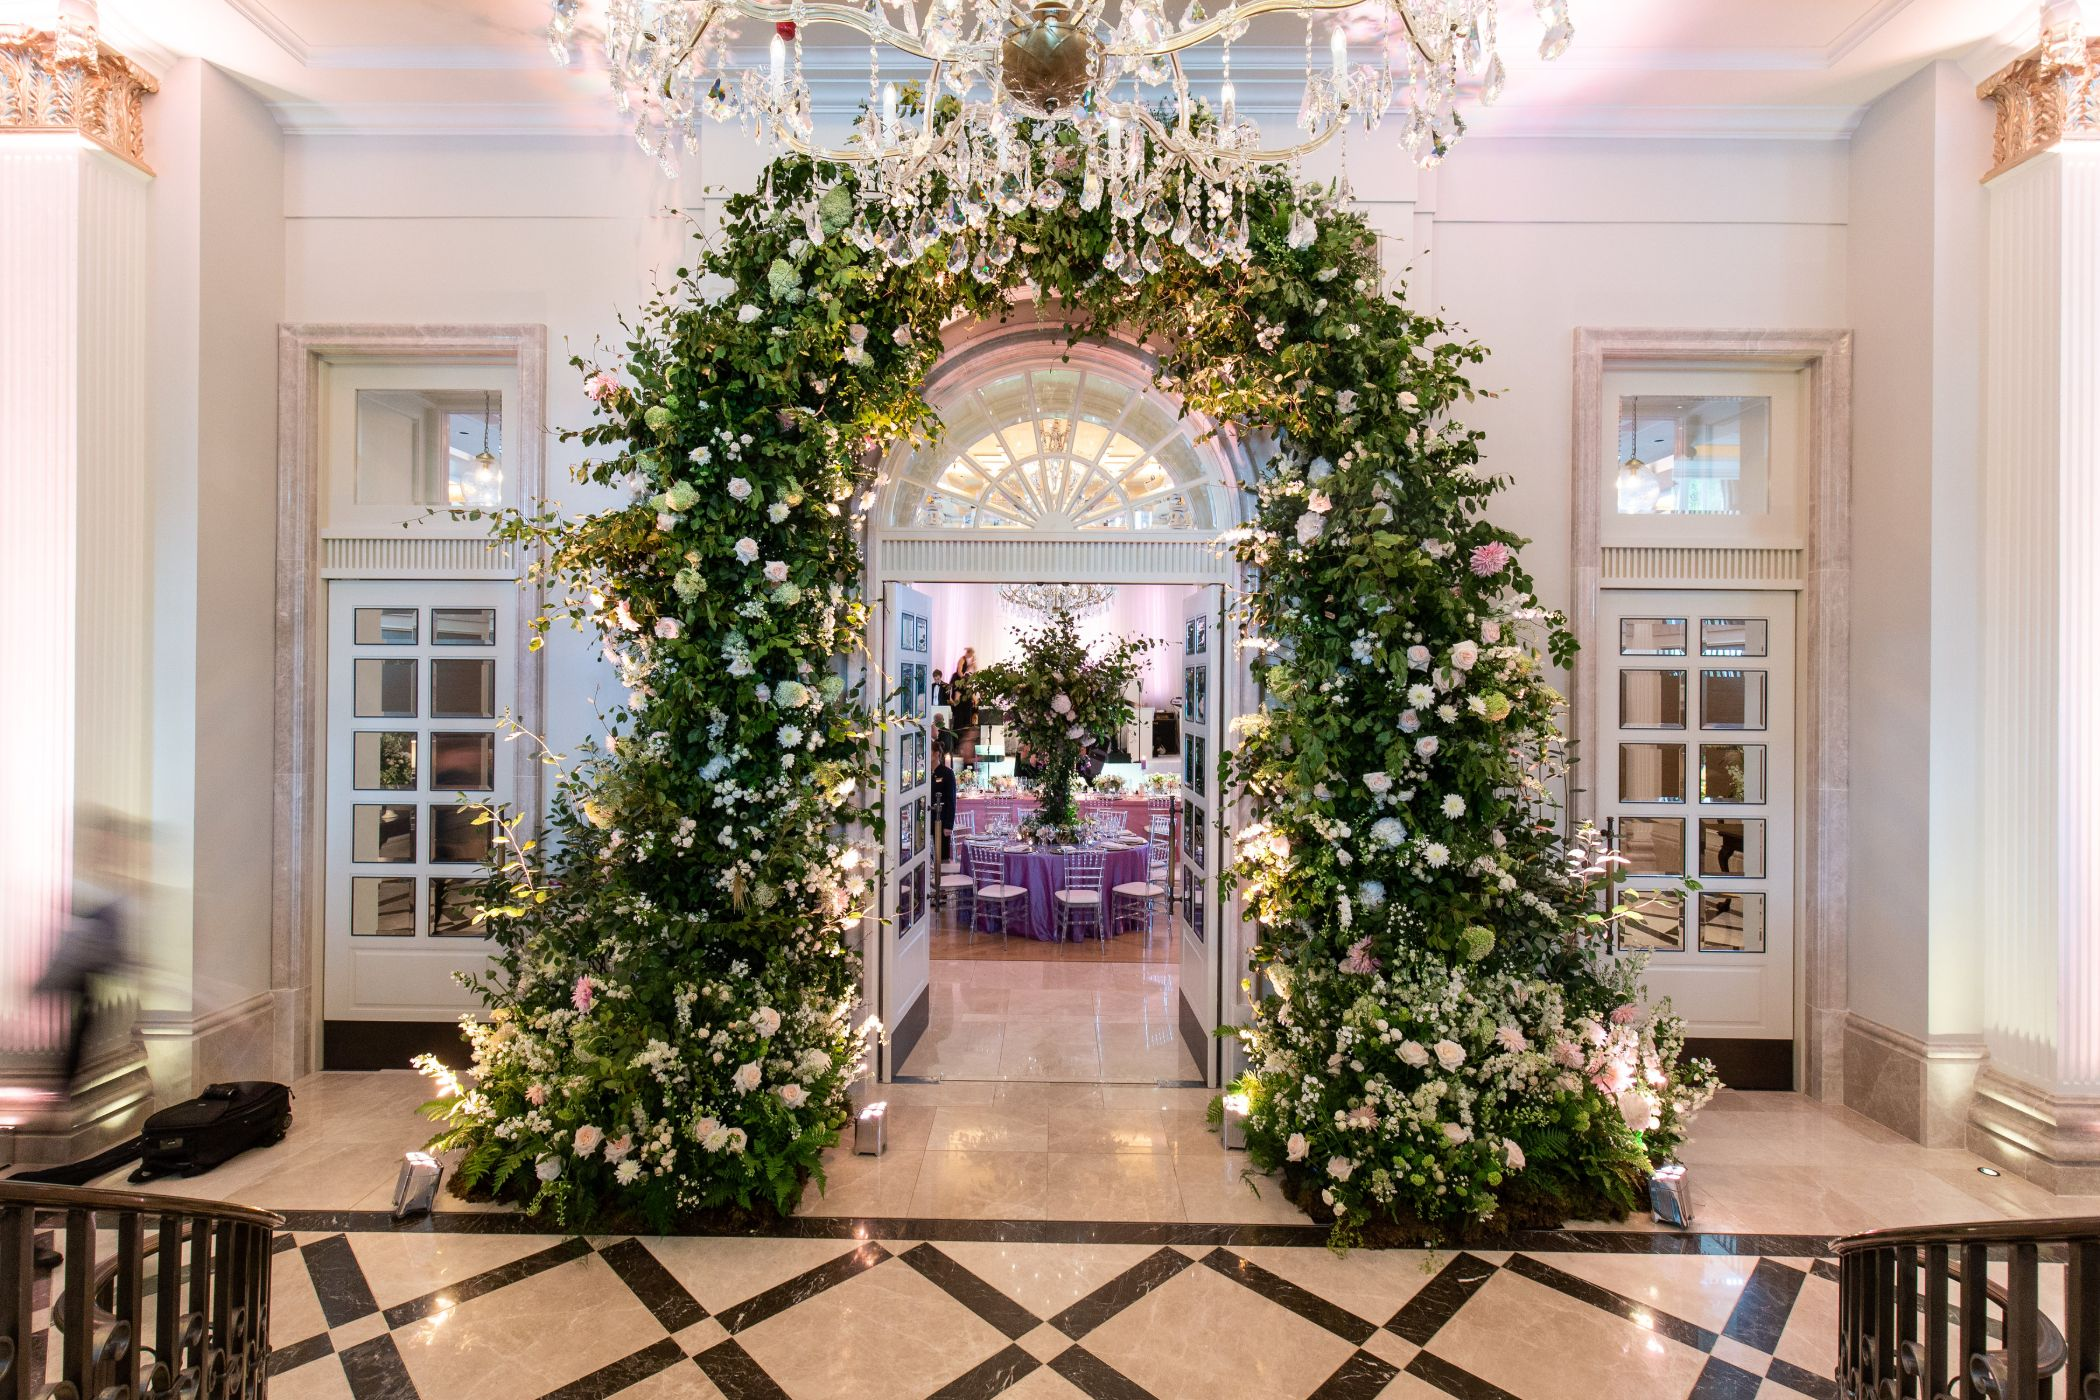 Floral arch leading to wedding reception.